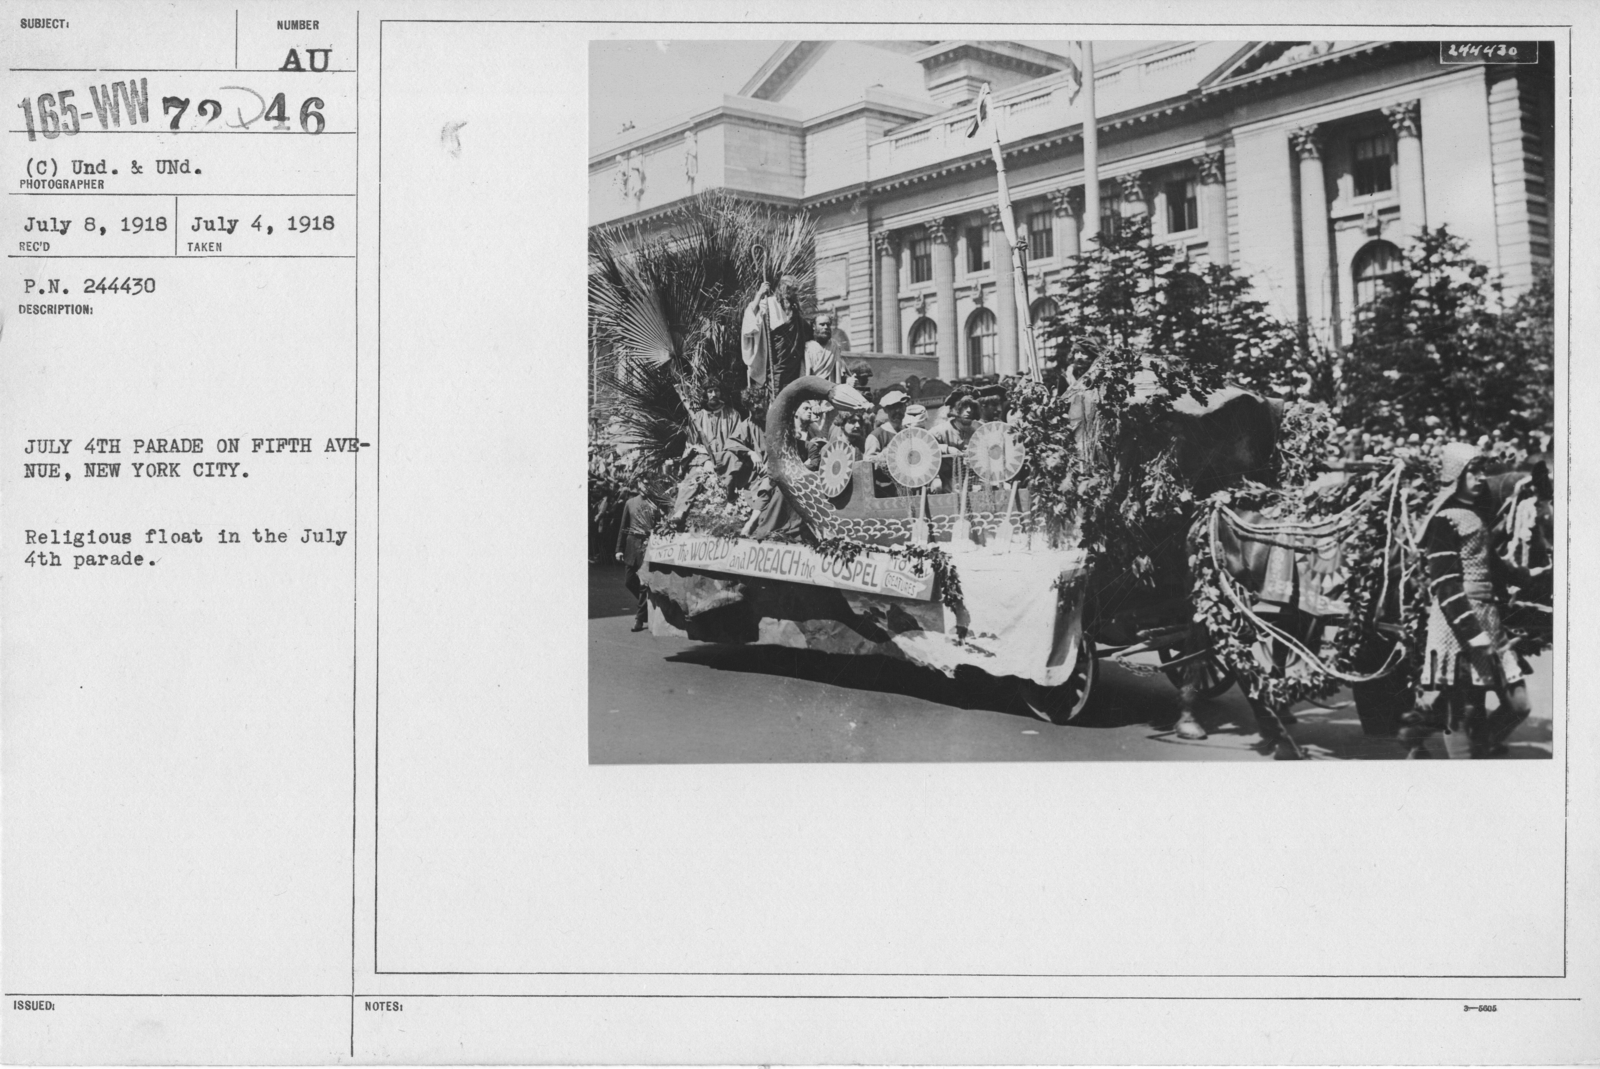 Ceremonies - Independence Day, 1918 - July 4th Parade on Fifth Avenue, New York City. Religious float in the July 4th parade